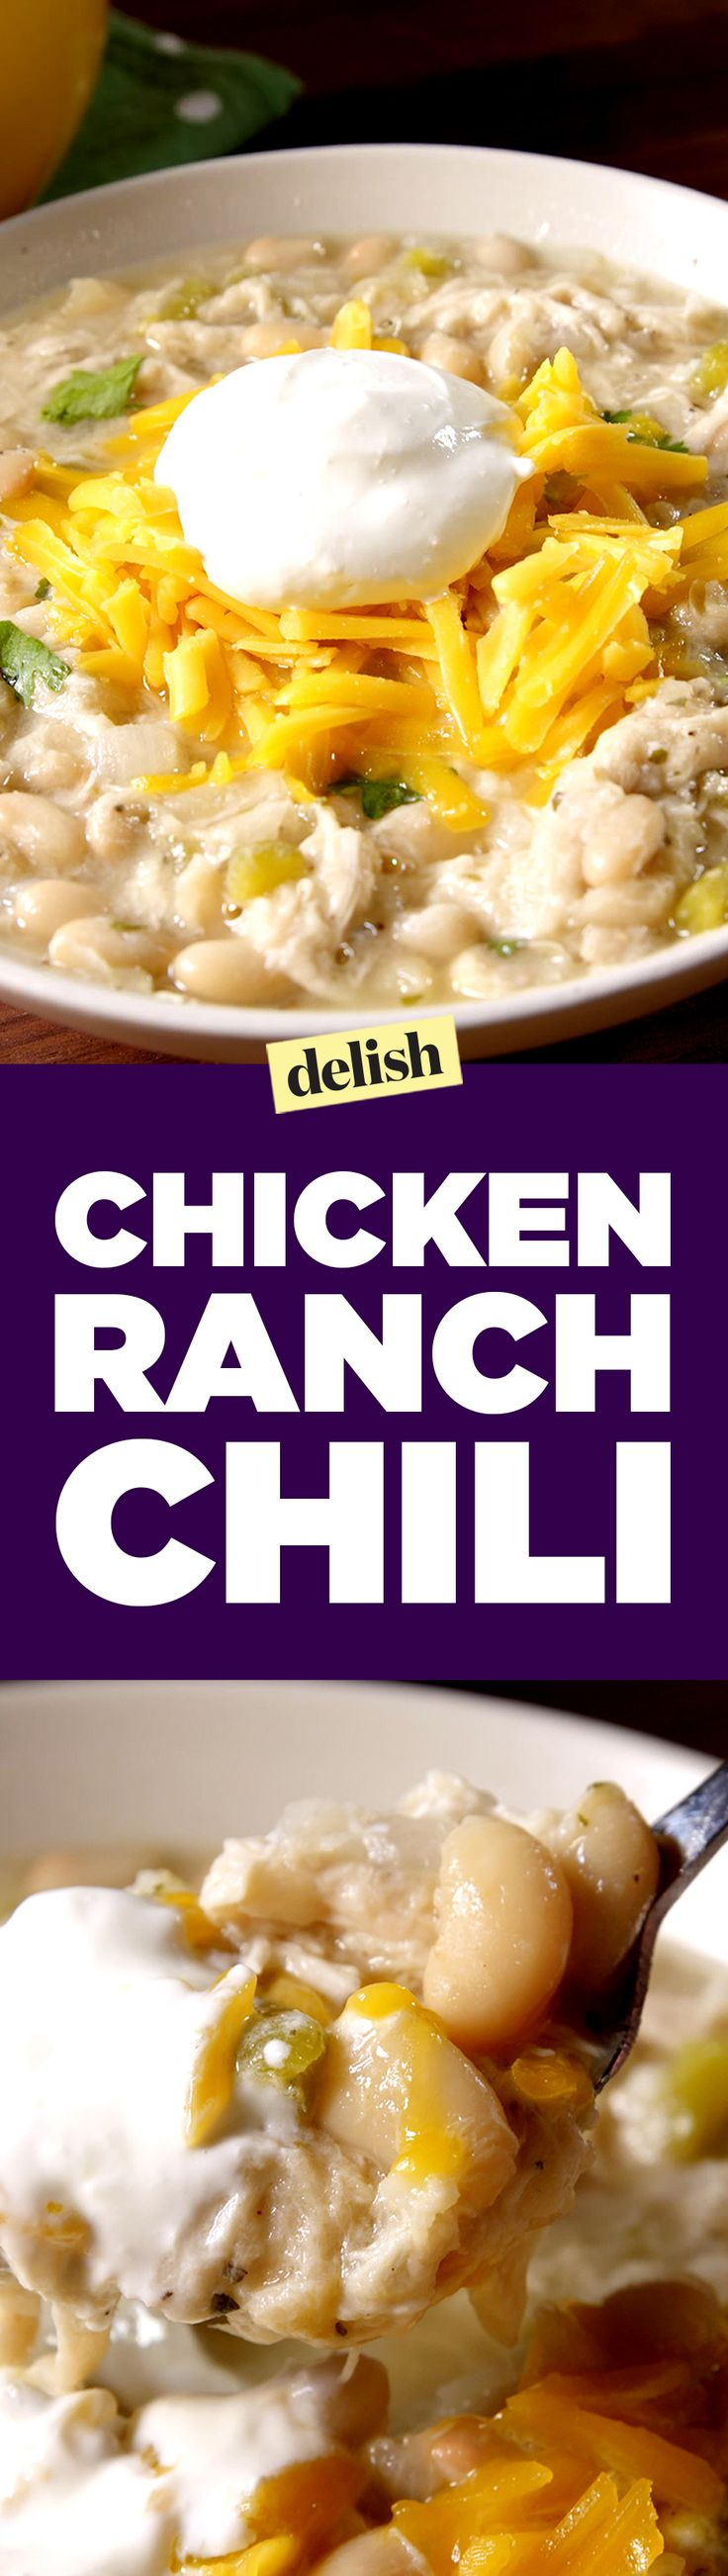 Chicken Ranch Chili is a new look and new taste that you'll love. Get the recipe on Delish.com.